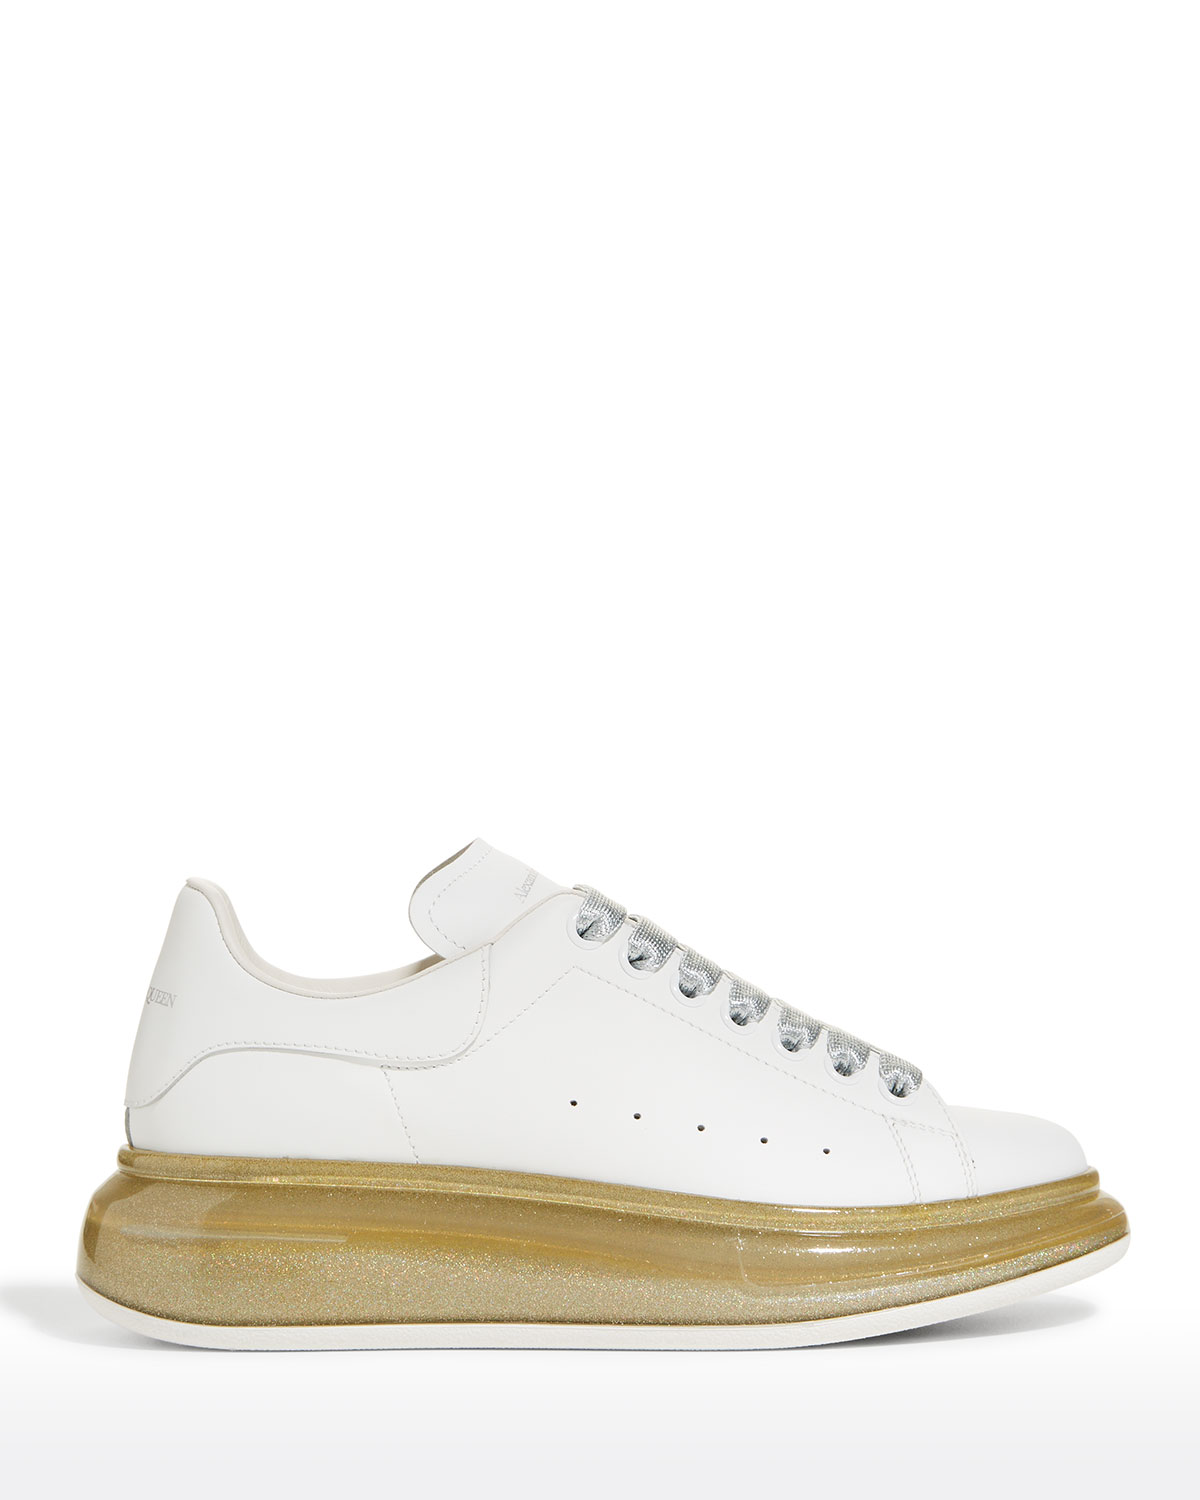 Alexander Mcqueen LEATHER CLEAR-SOLE CHUNKY SNEAKERS